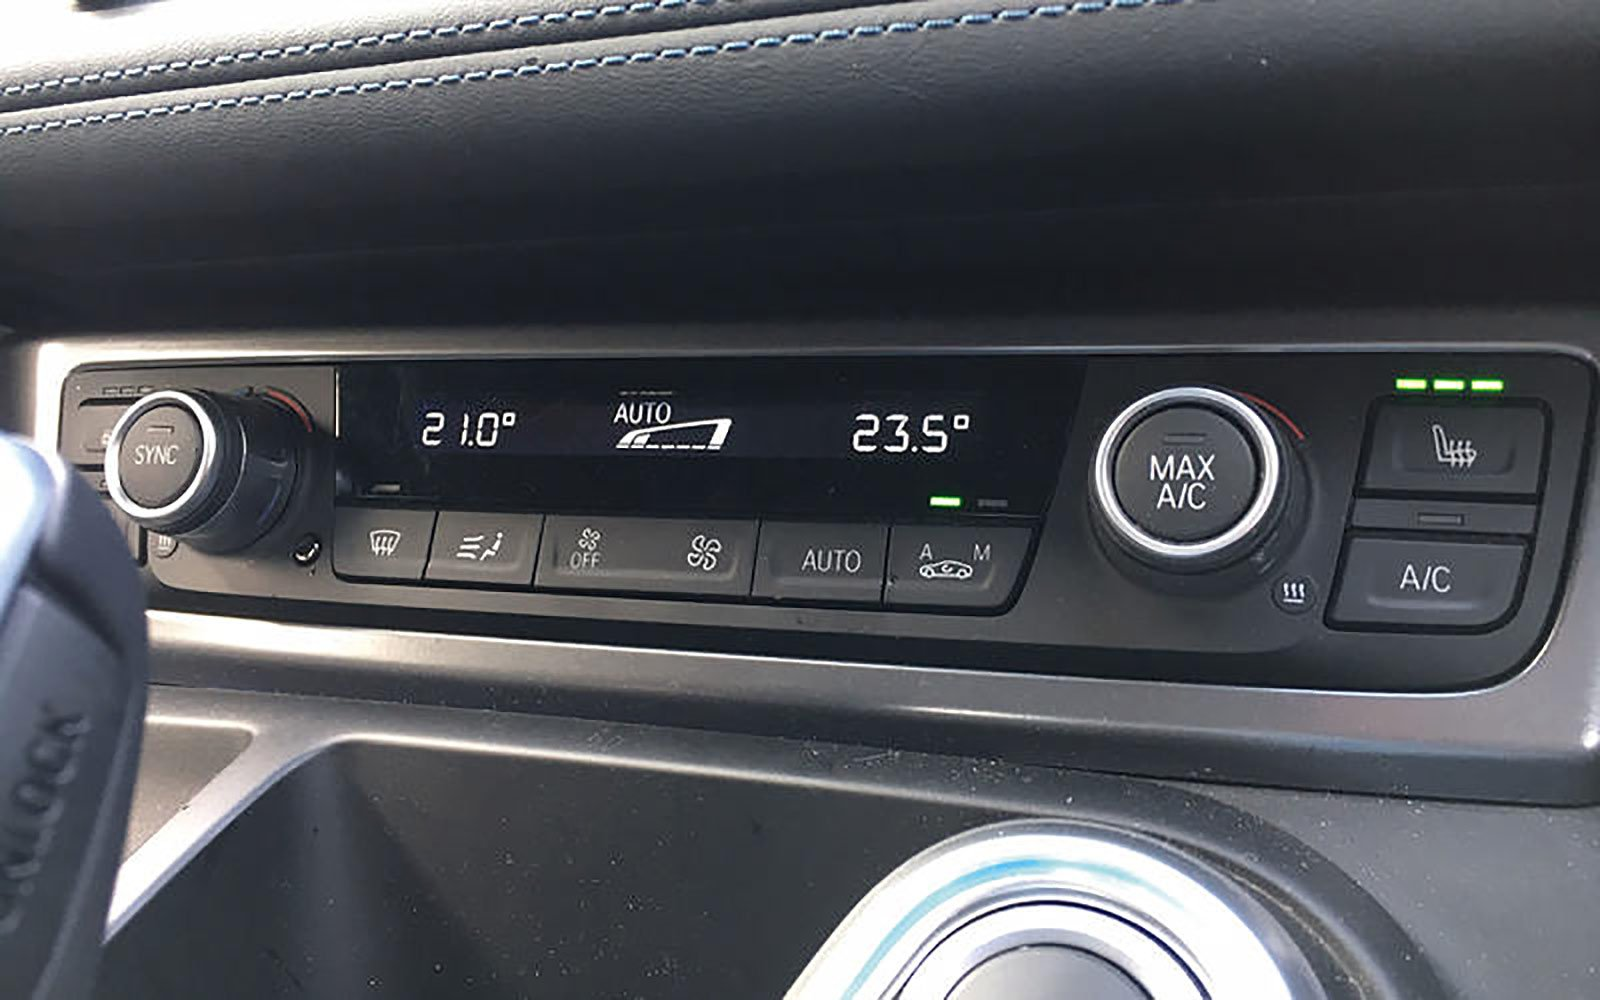 BMW air conditioning unit